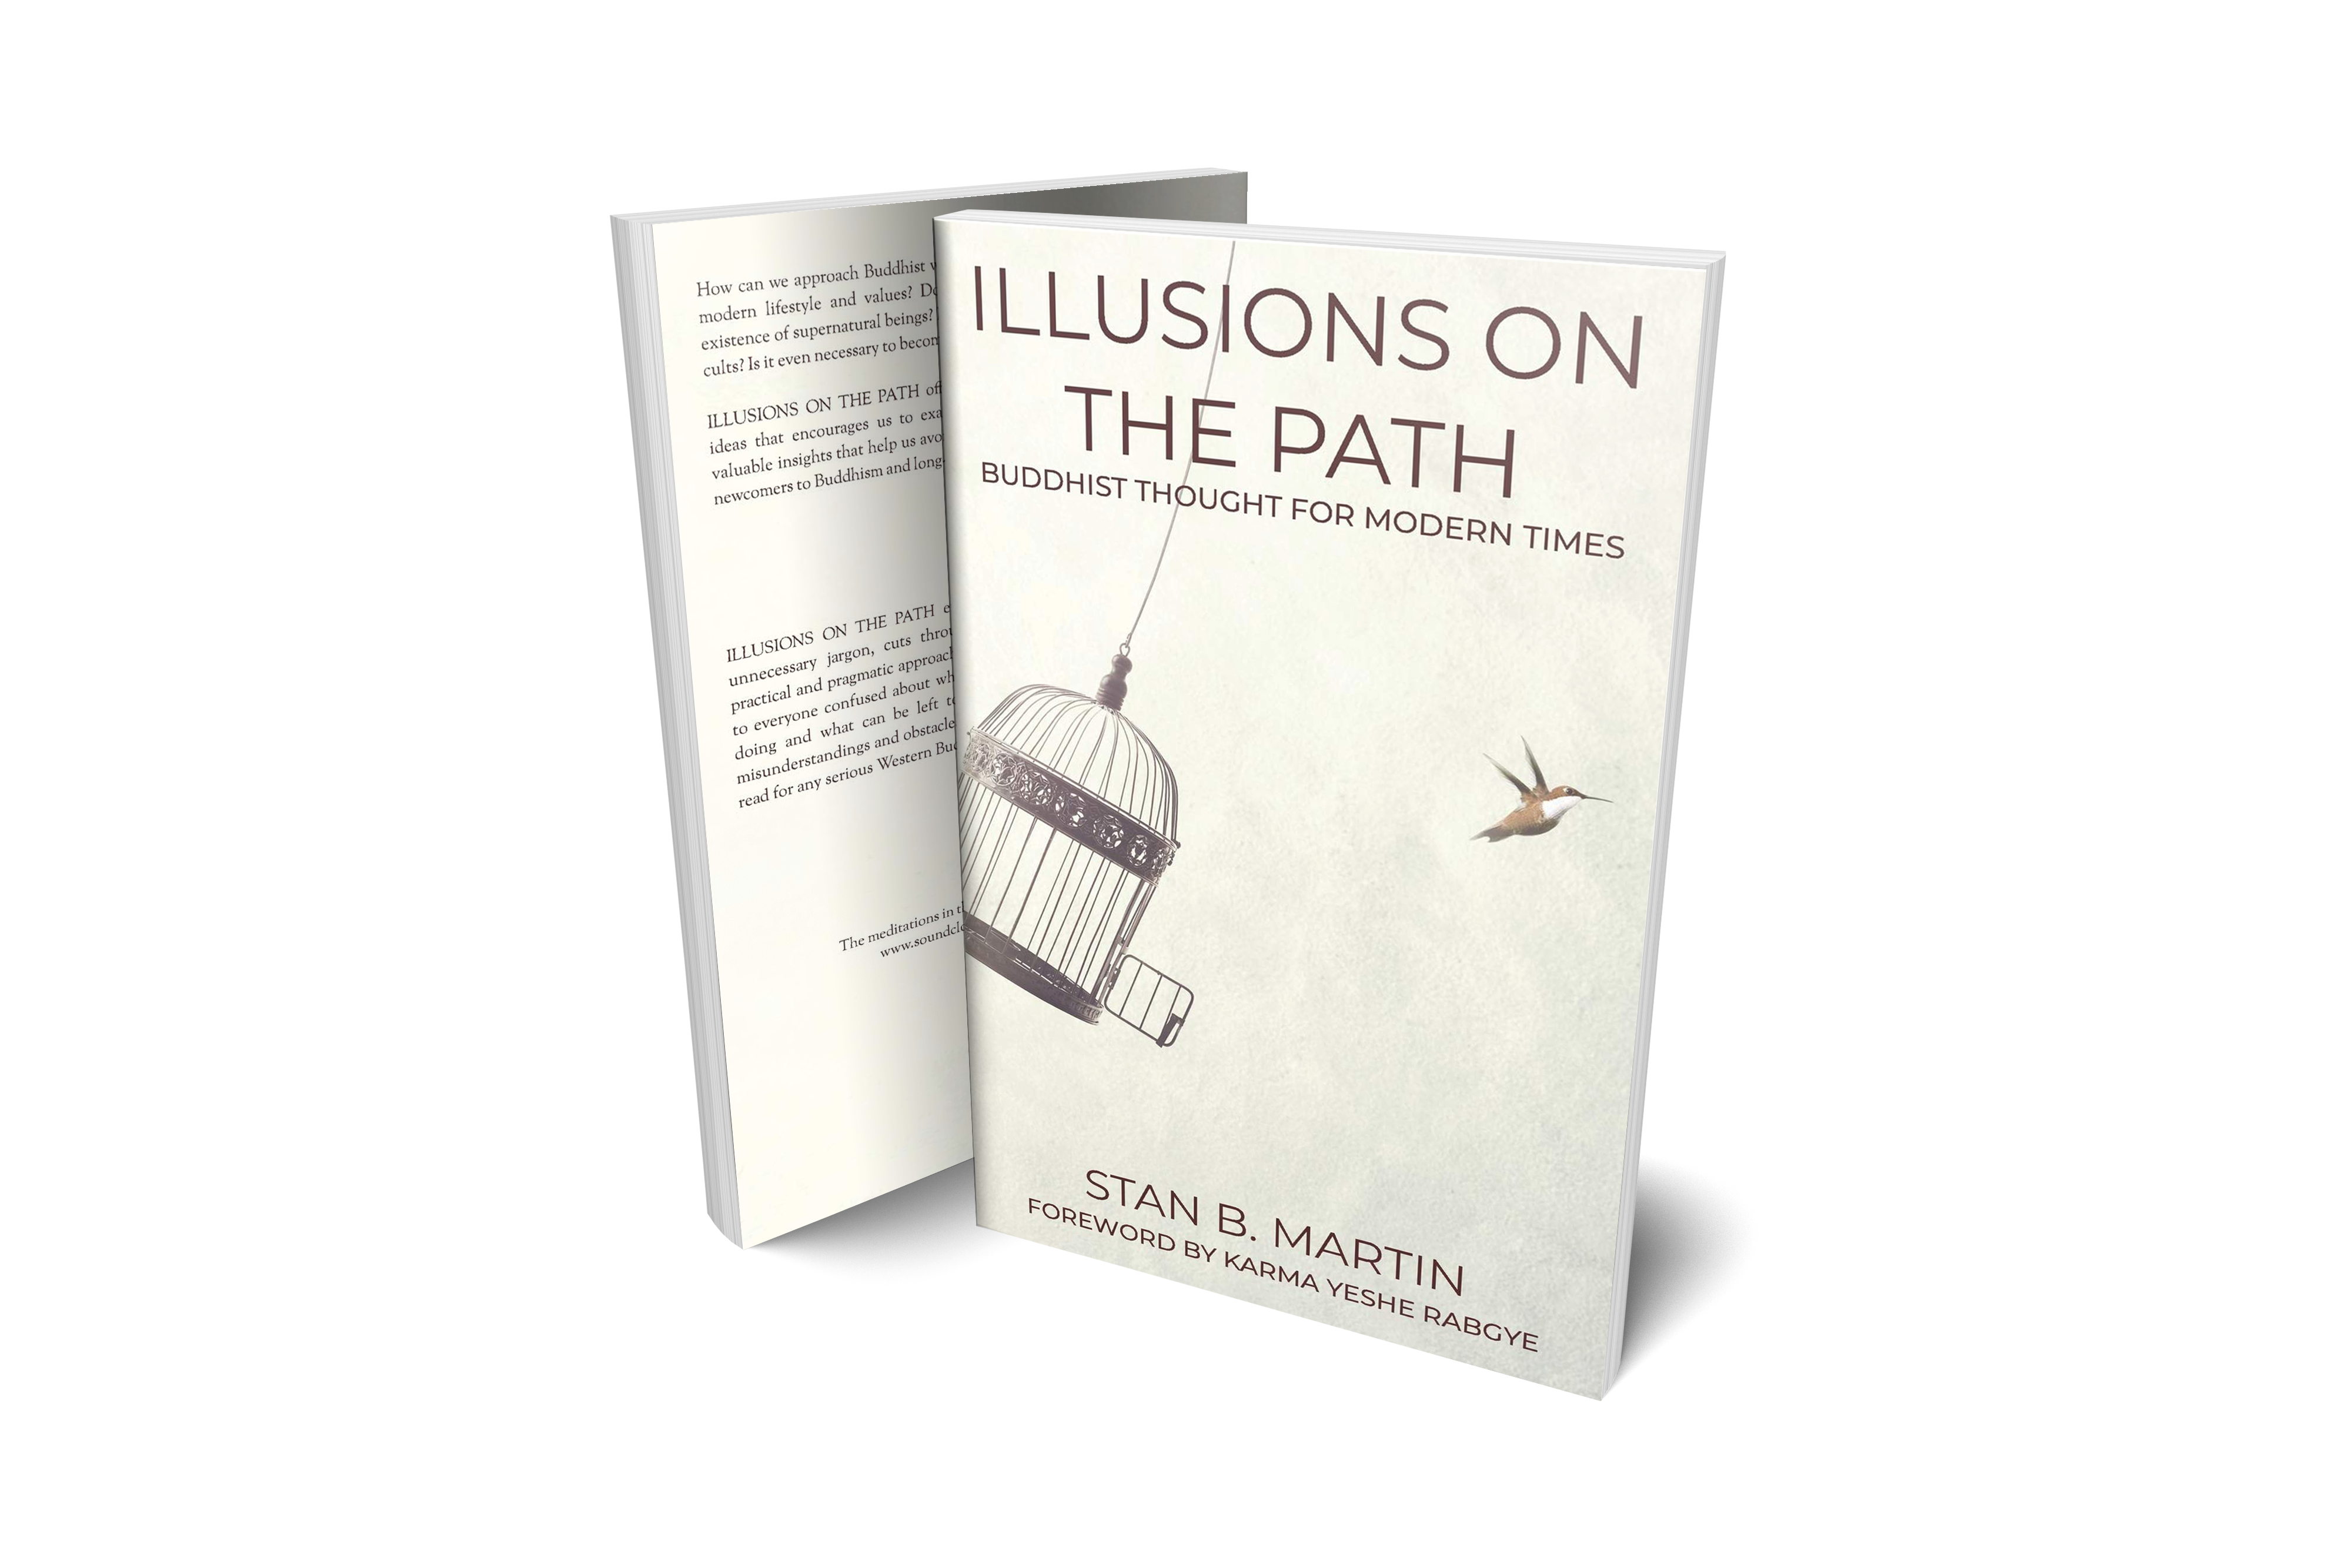 Illusions on the Path